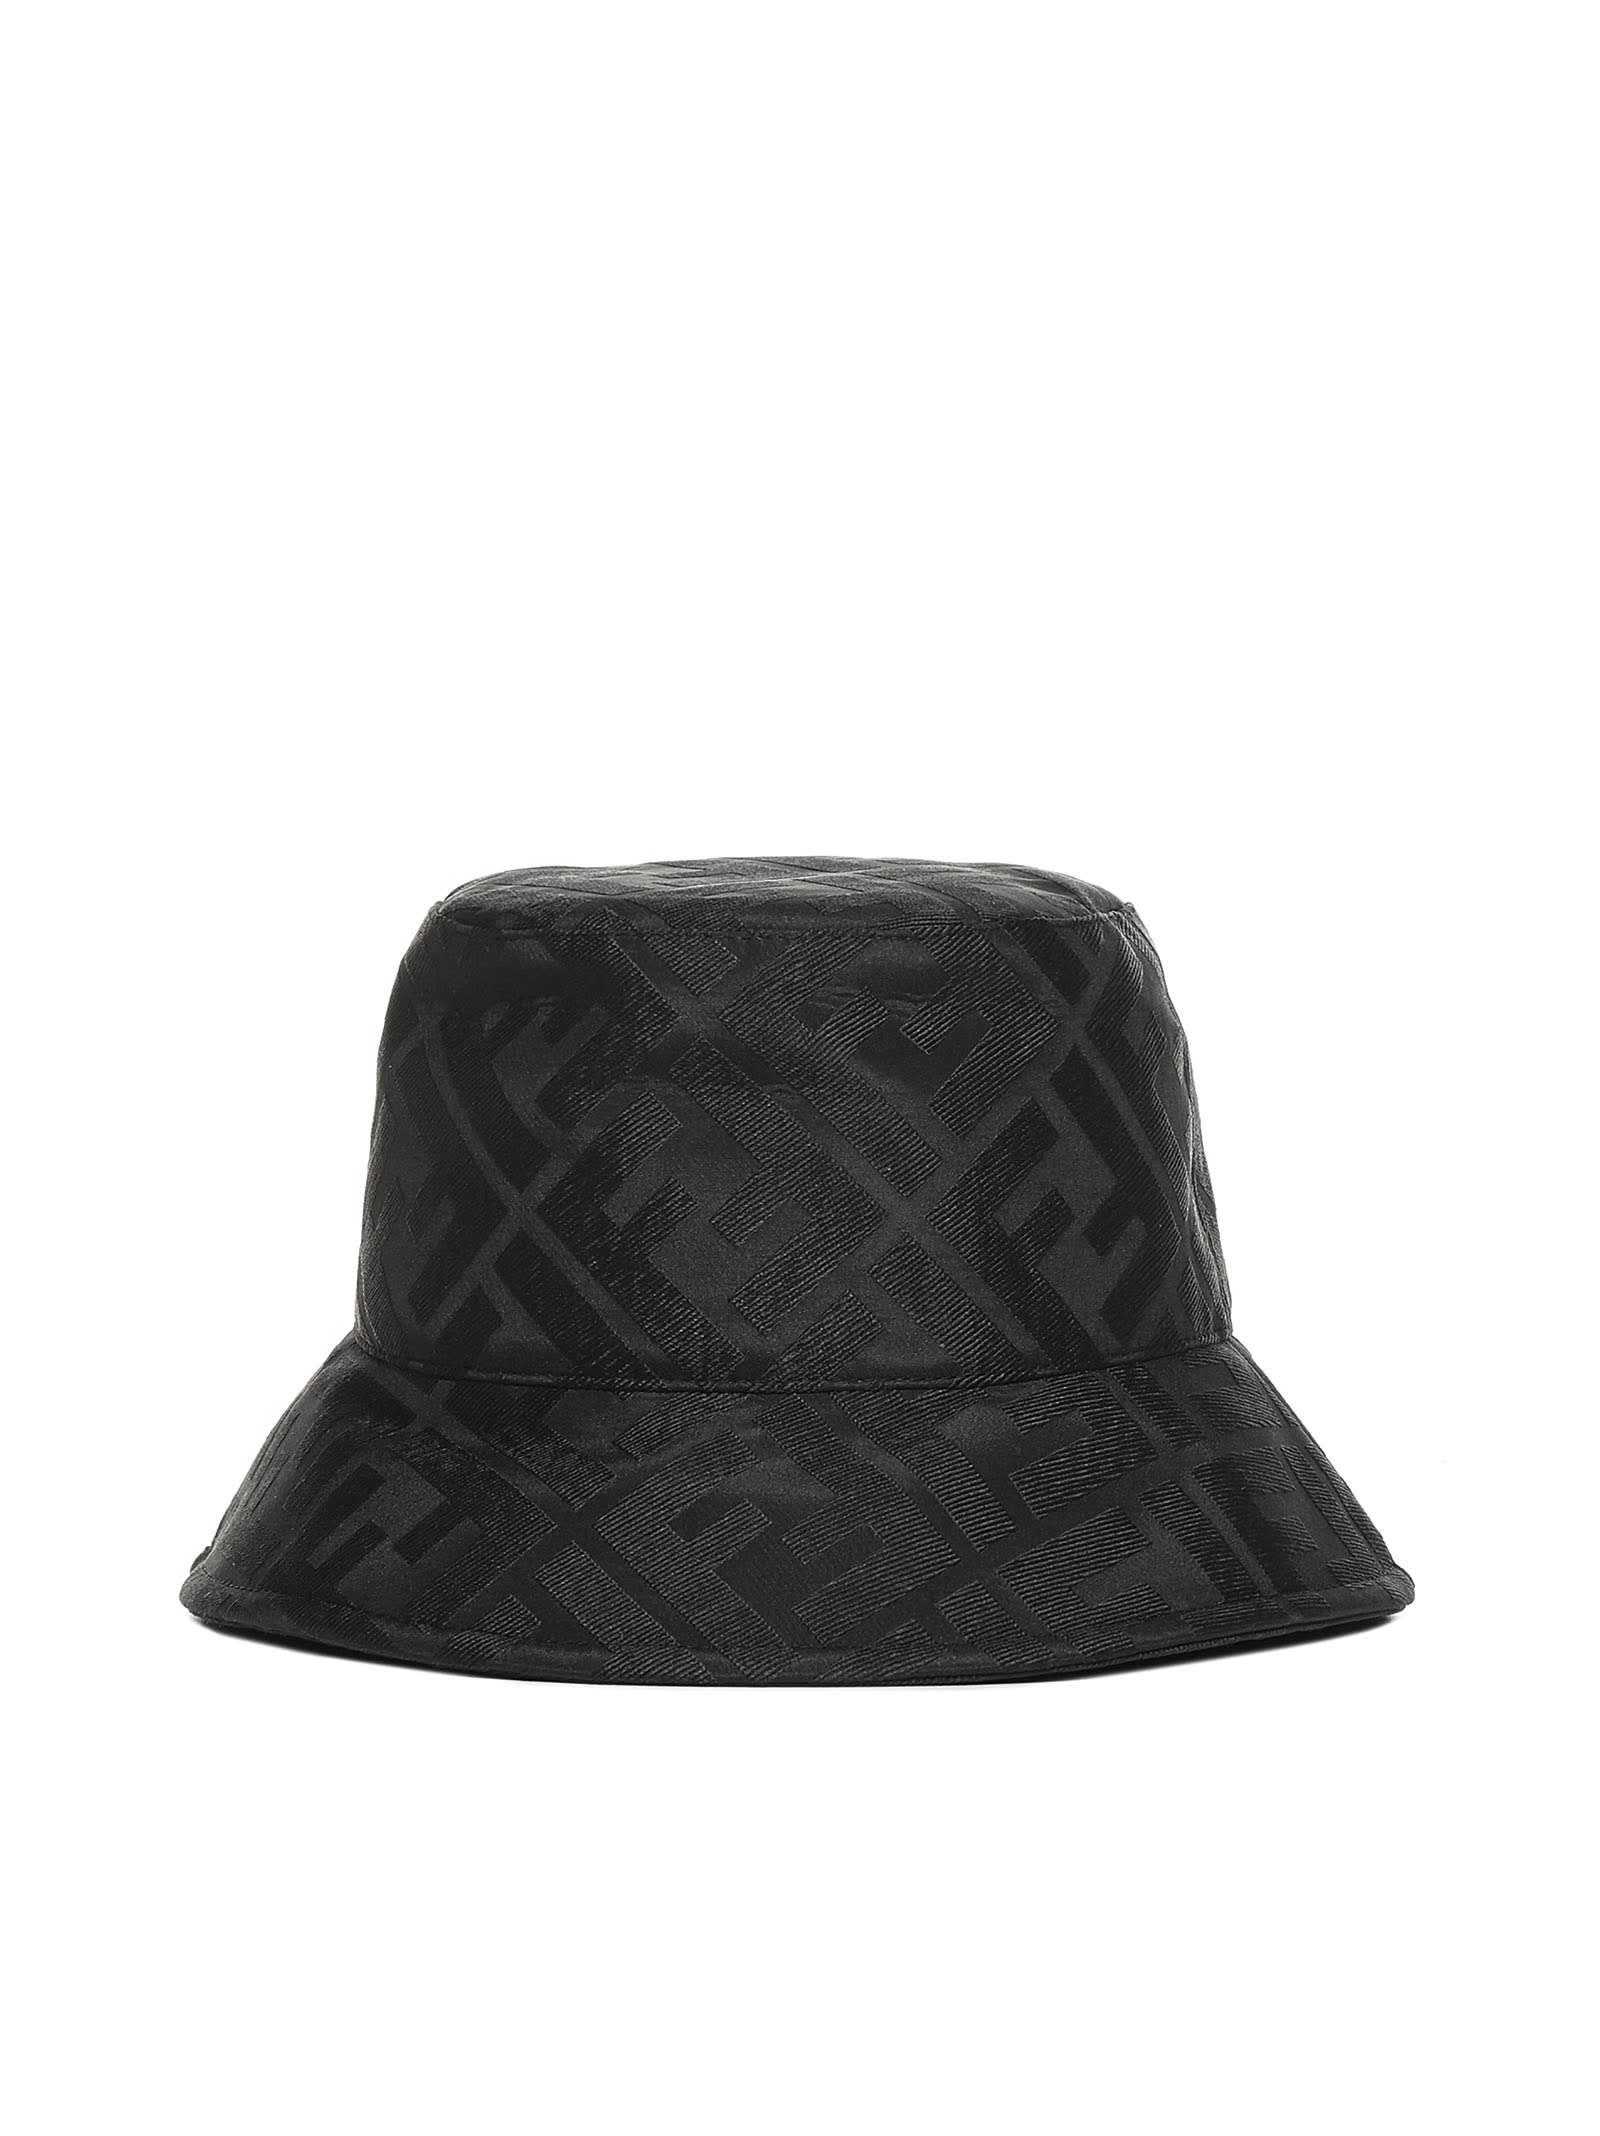 Fendi Hats HAT